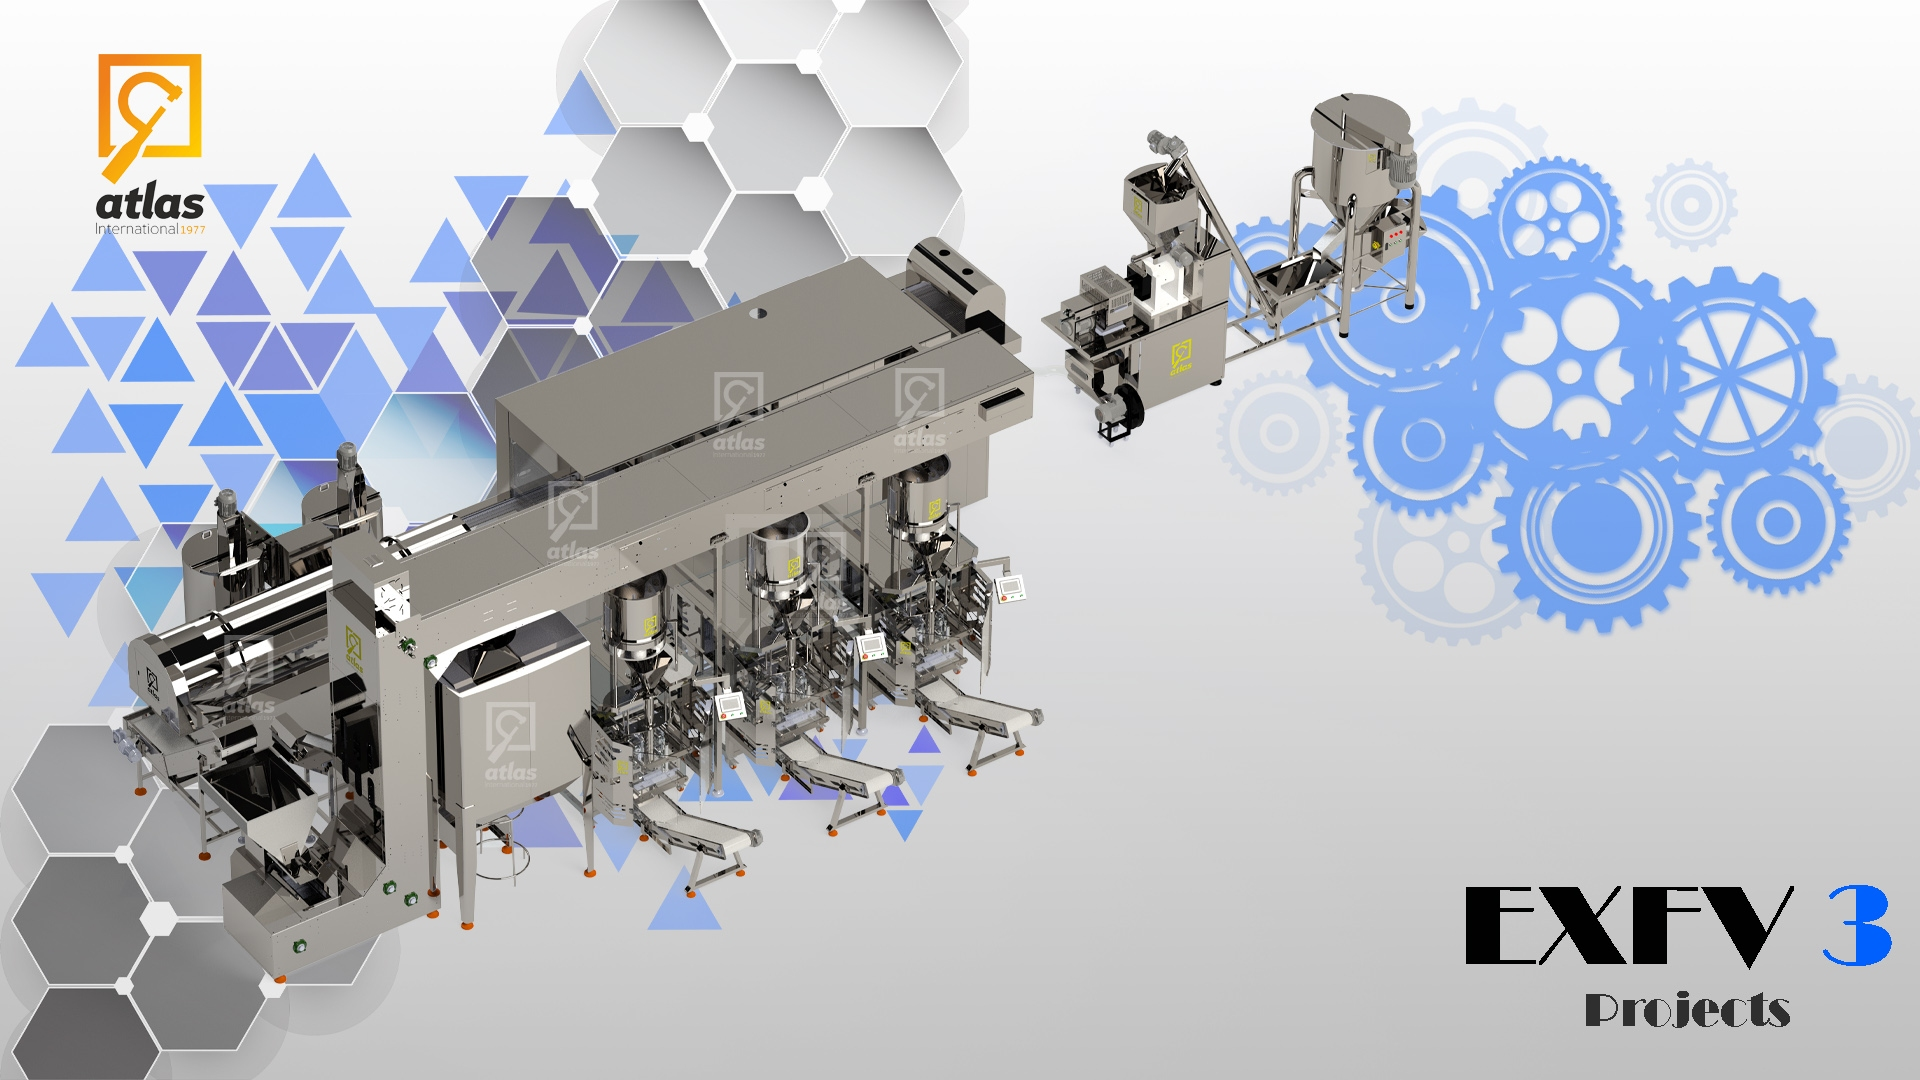 Corn chips production line project for 200 kg equipped with a three-layer oven and volumetric filling machines